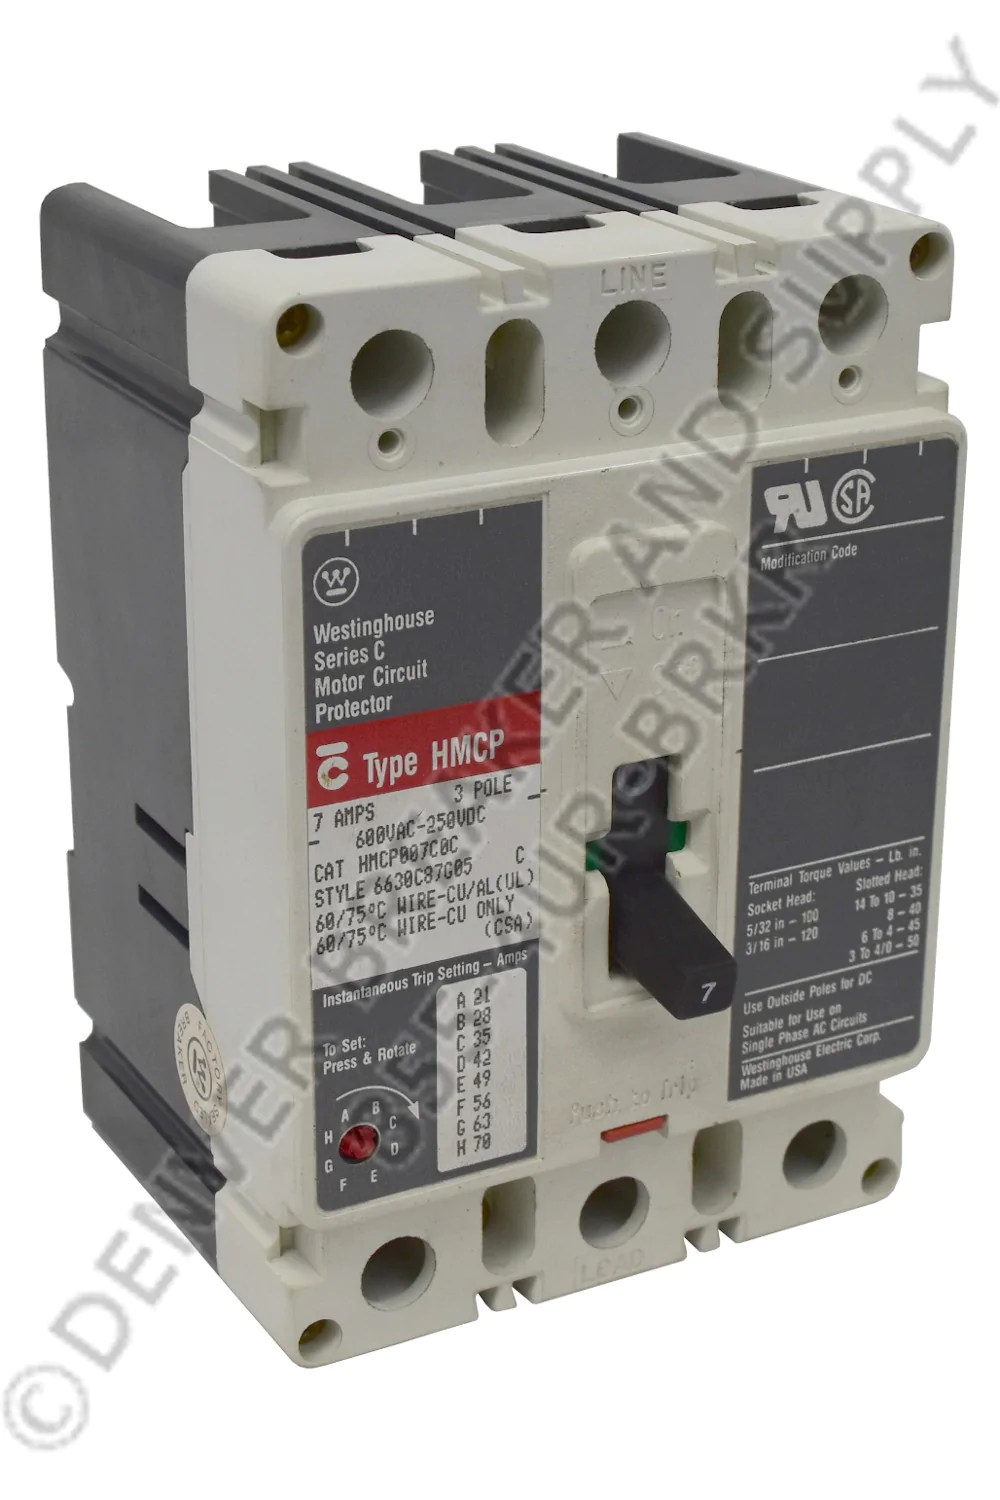 small resolution of cutler hammer hmcp003a0 circuit breaker